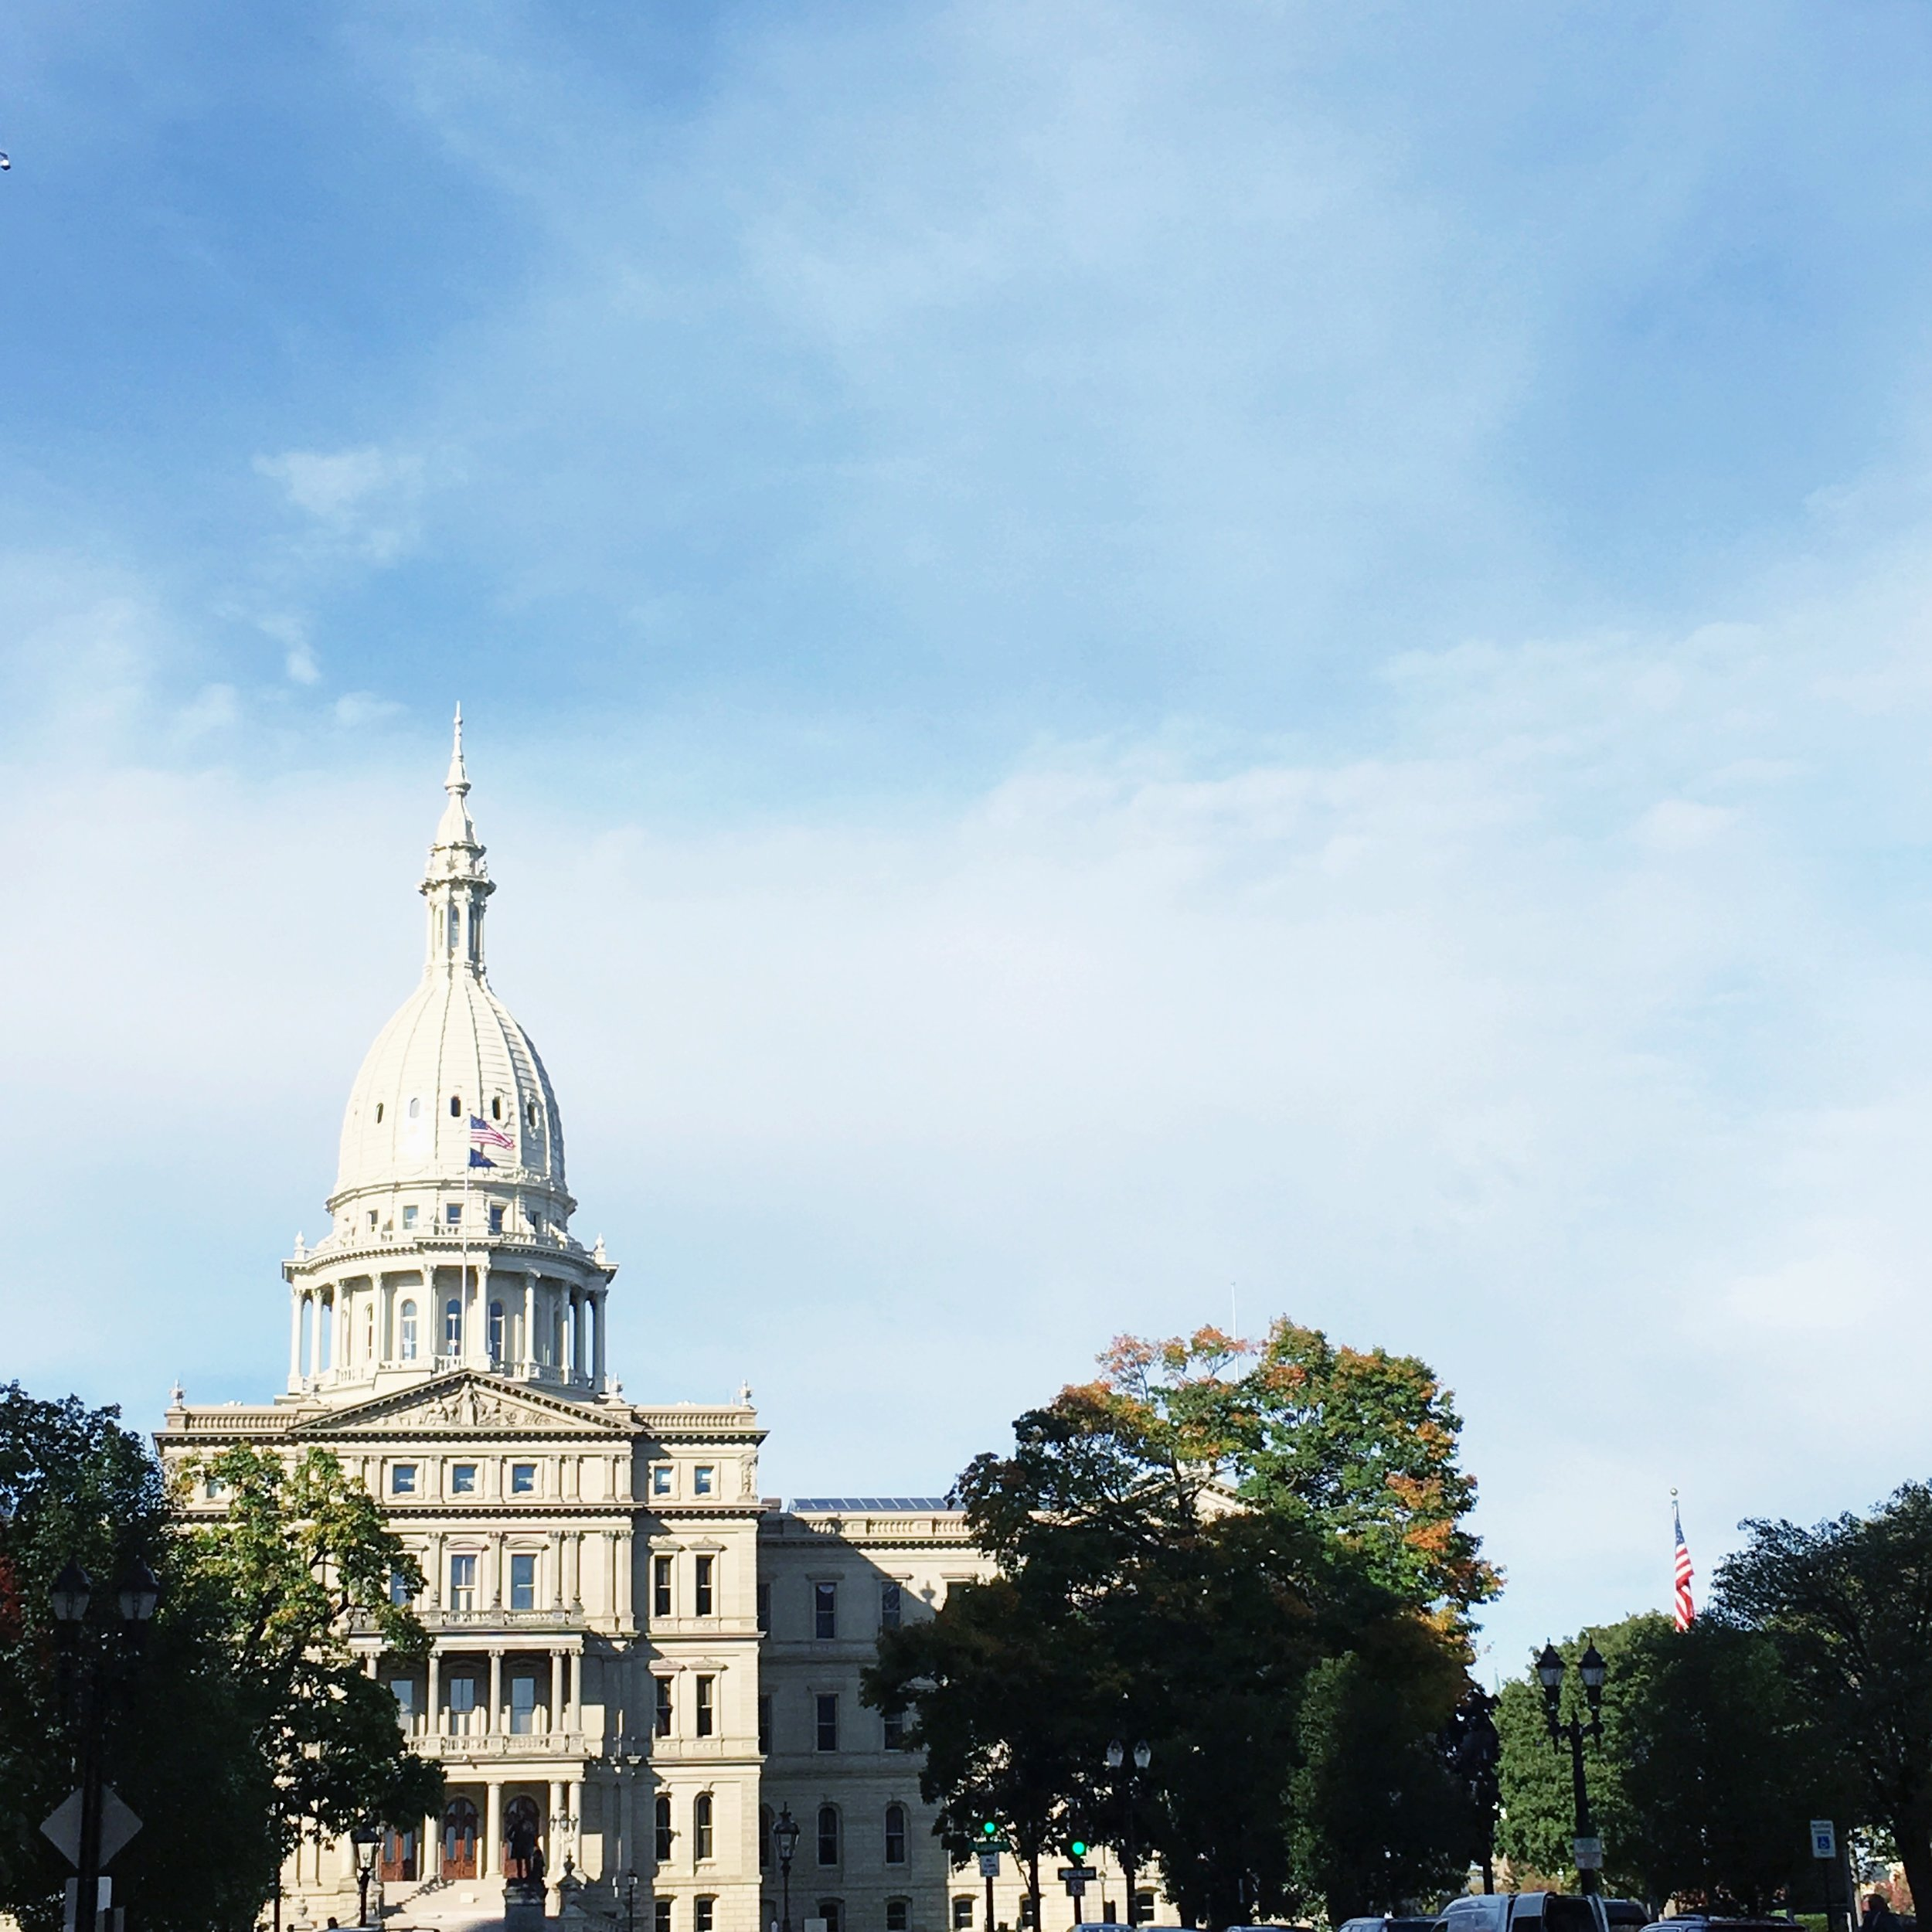 A beautiful morning for a photoshoot with  Cold Box Films . A client needed headshots and the buildings around the Lansing Capitol were the perfect backdrop!